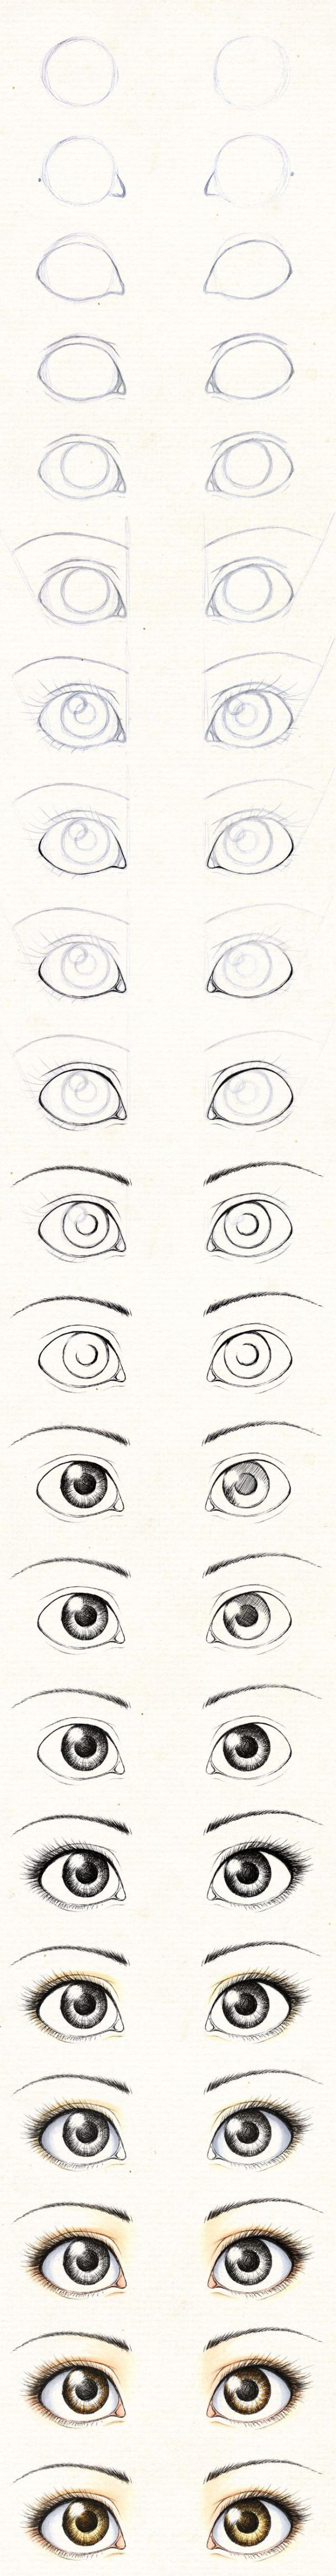 learn how to draw a set of eyes